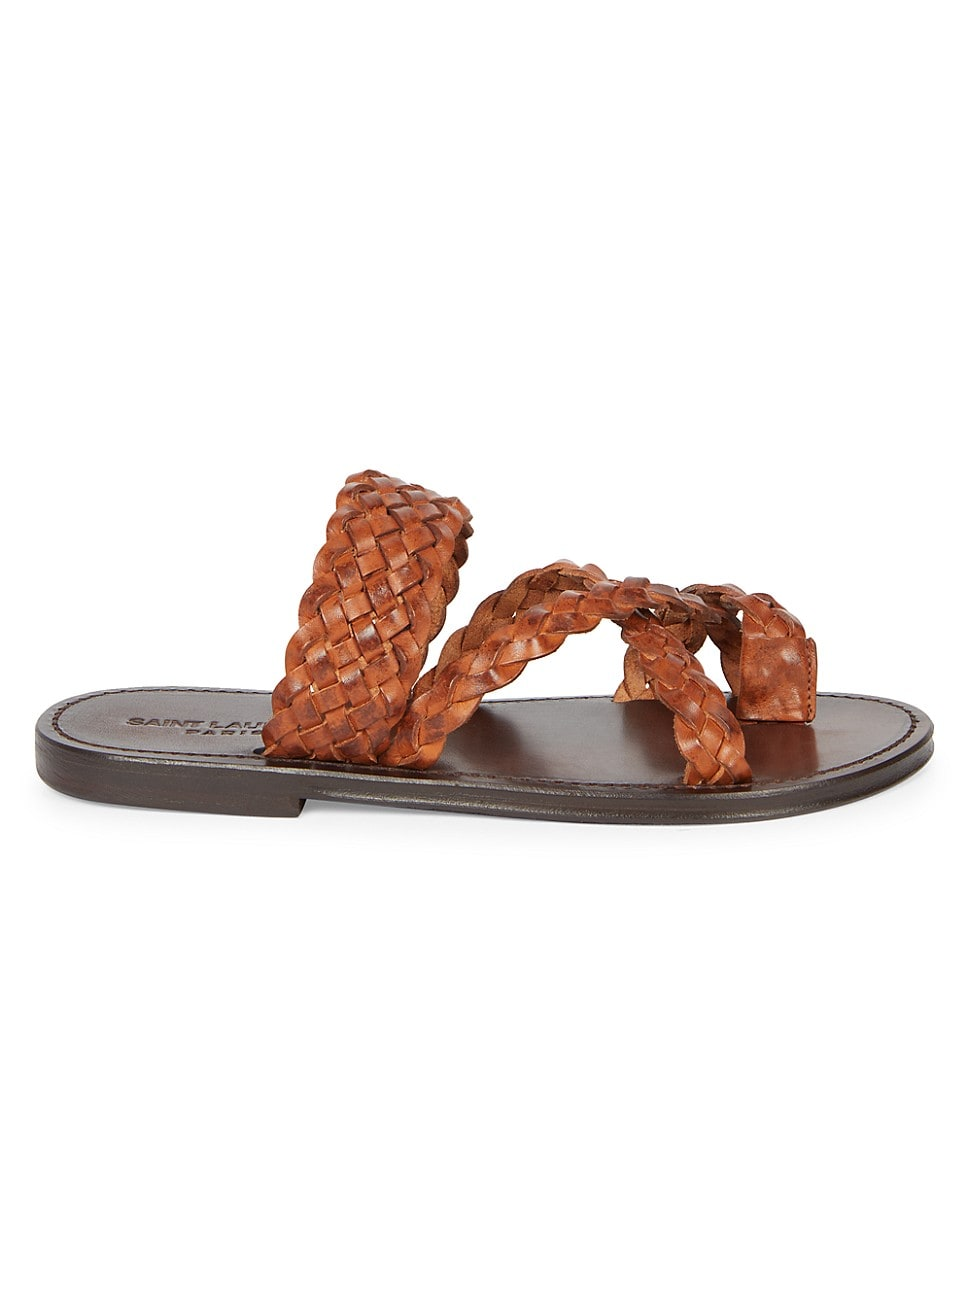 Saint Laurent WOMEN'S NEIL BRAIDED LEATHER SLIDE SANDALS